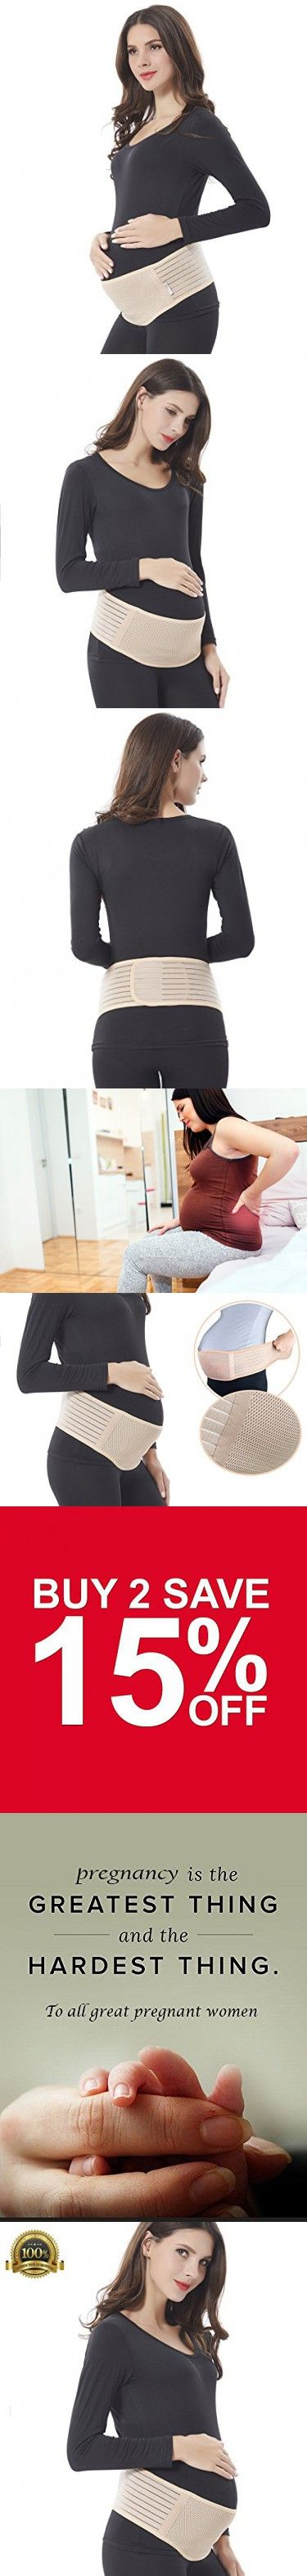 #1 Top Recommended Maternity Belt - Babo Care Breathable Lower Back and Pelvic Support - Comfortable Belly Band for Pregnancy - Prenatal Cradle for Baby - One Size,Nude Color